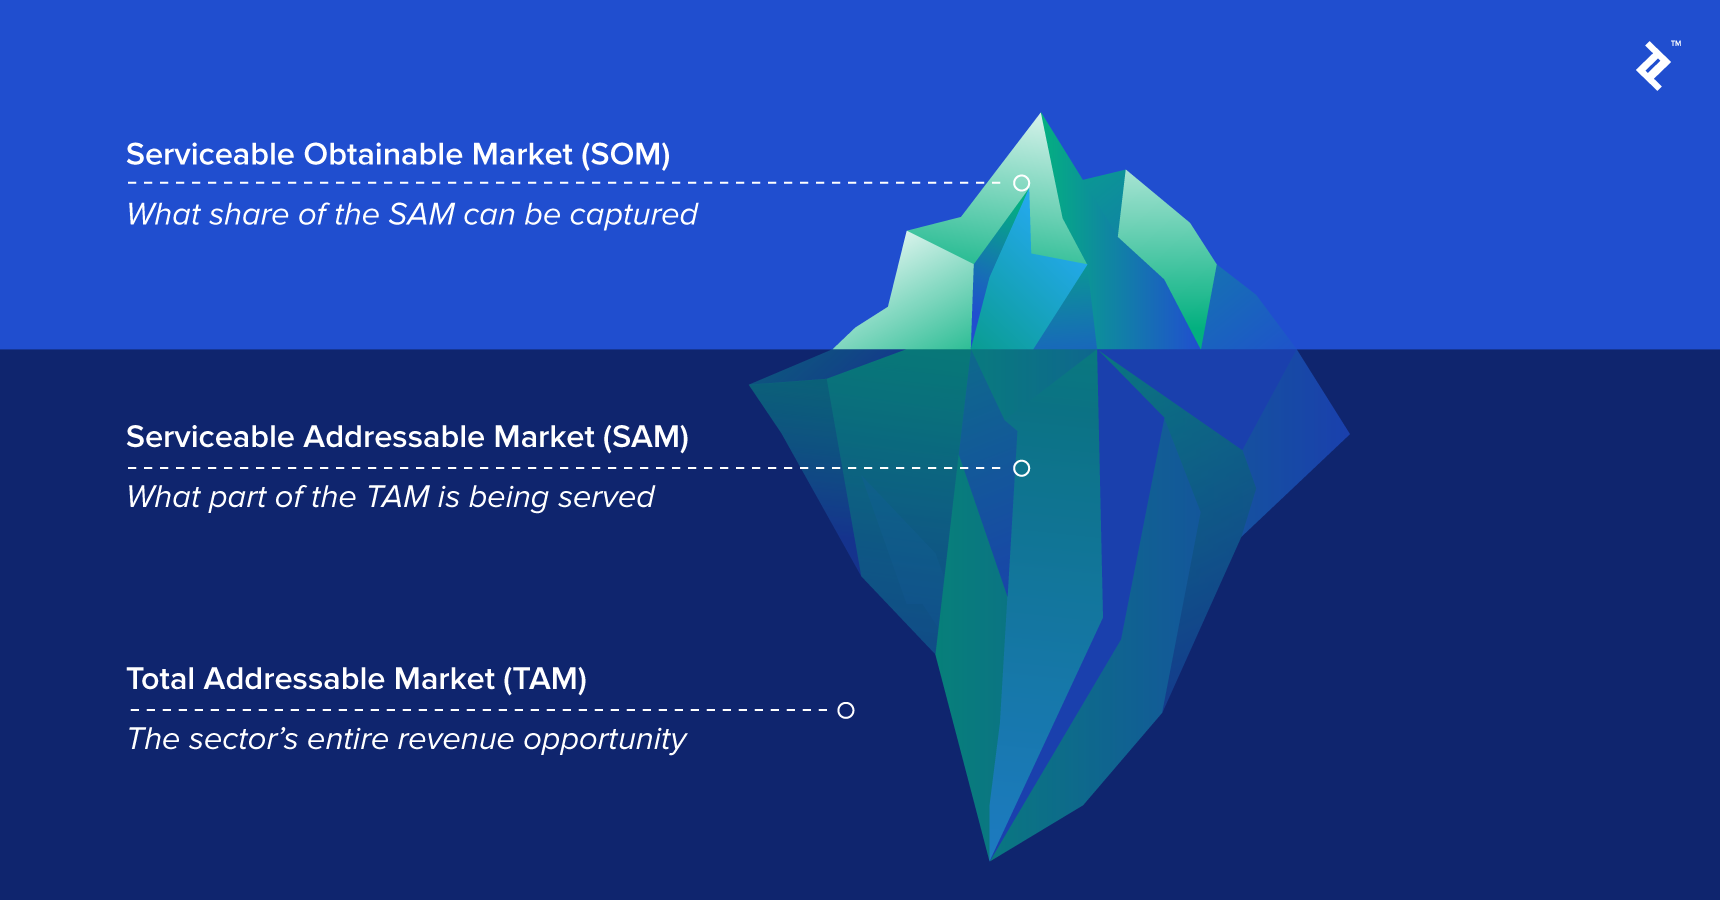 How total addressable market (TAM), serviceable available market (SAM), and serviceable obtainable market (SOM) are all related.